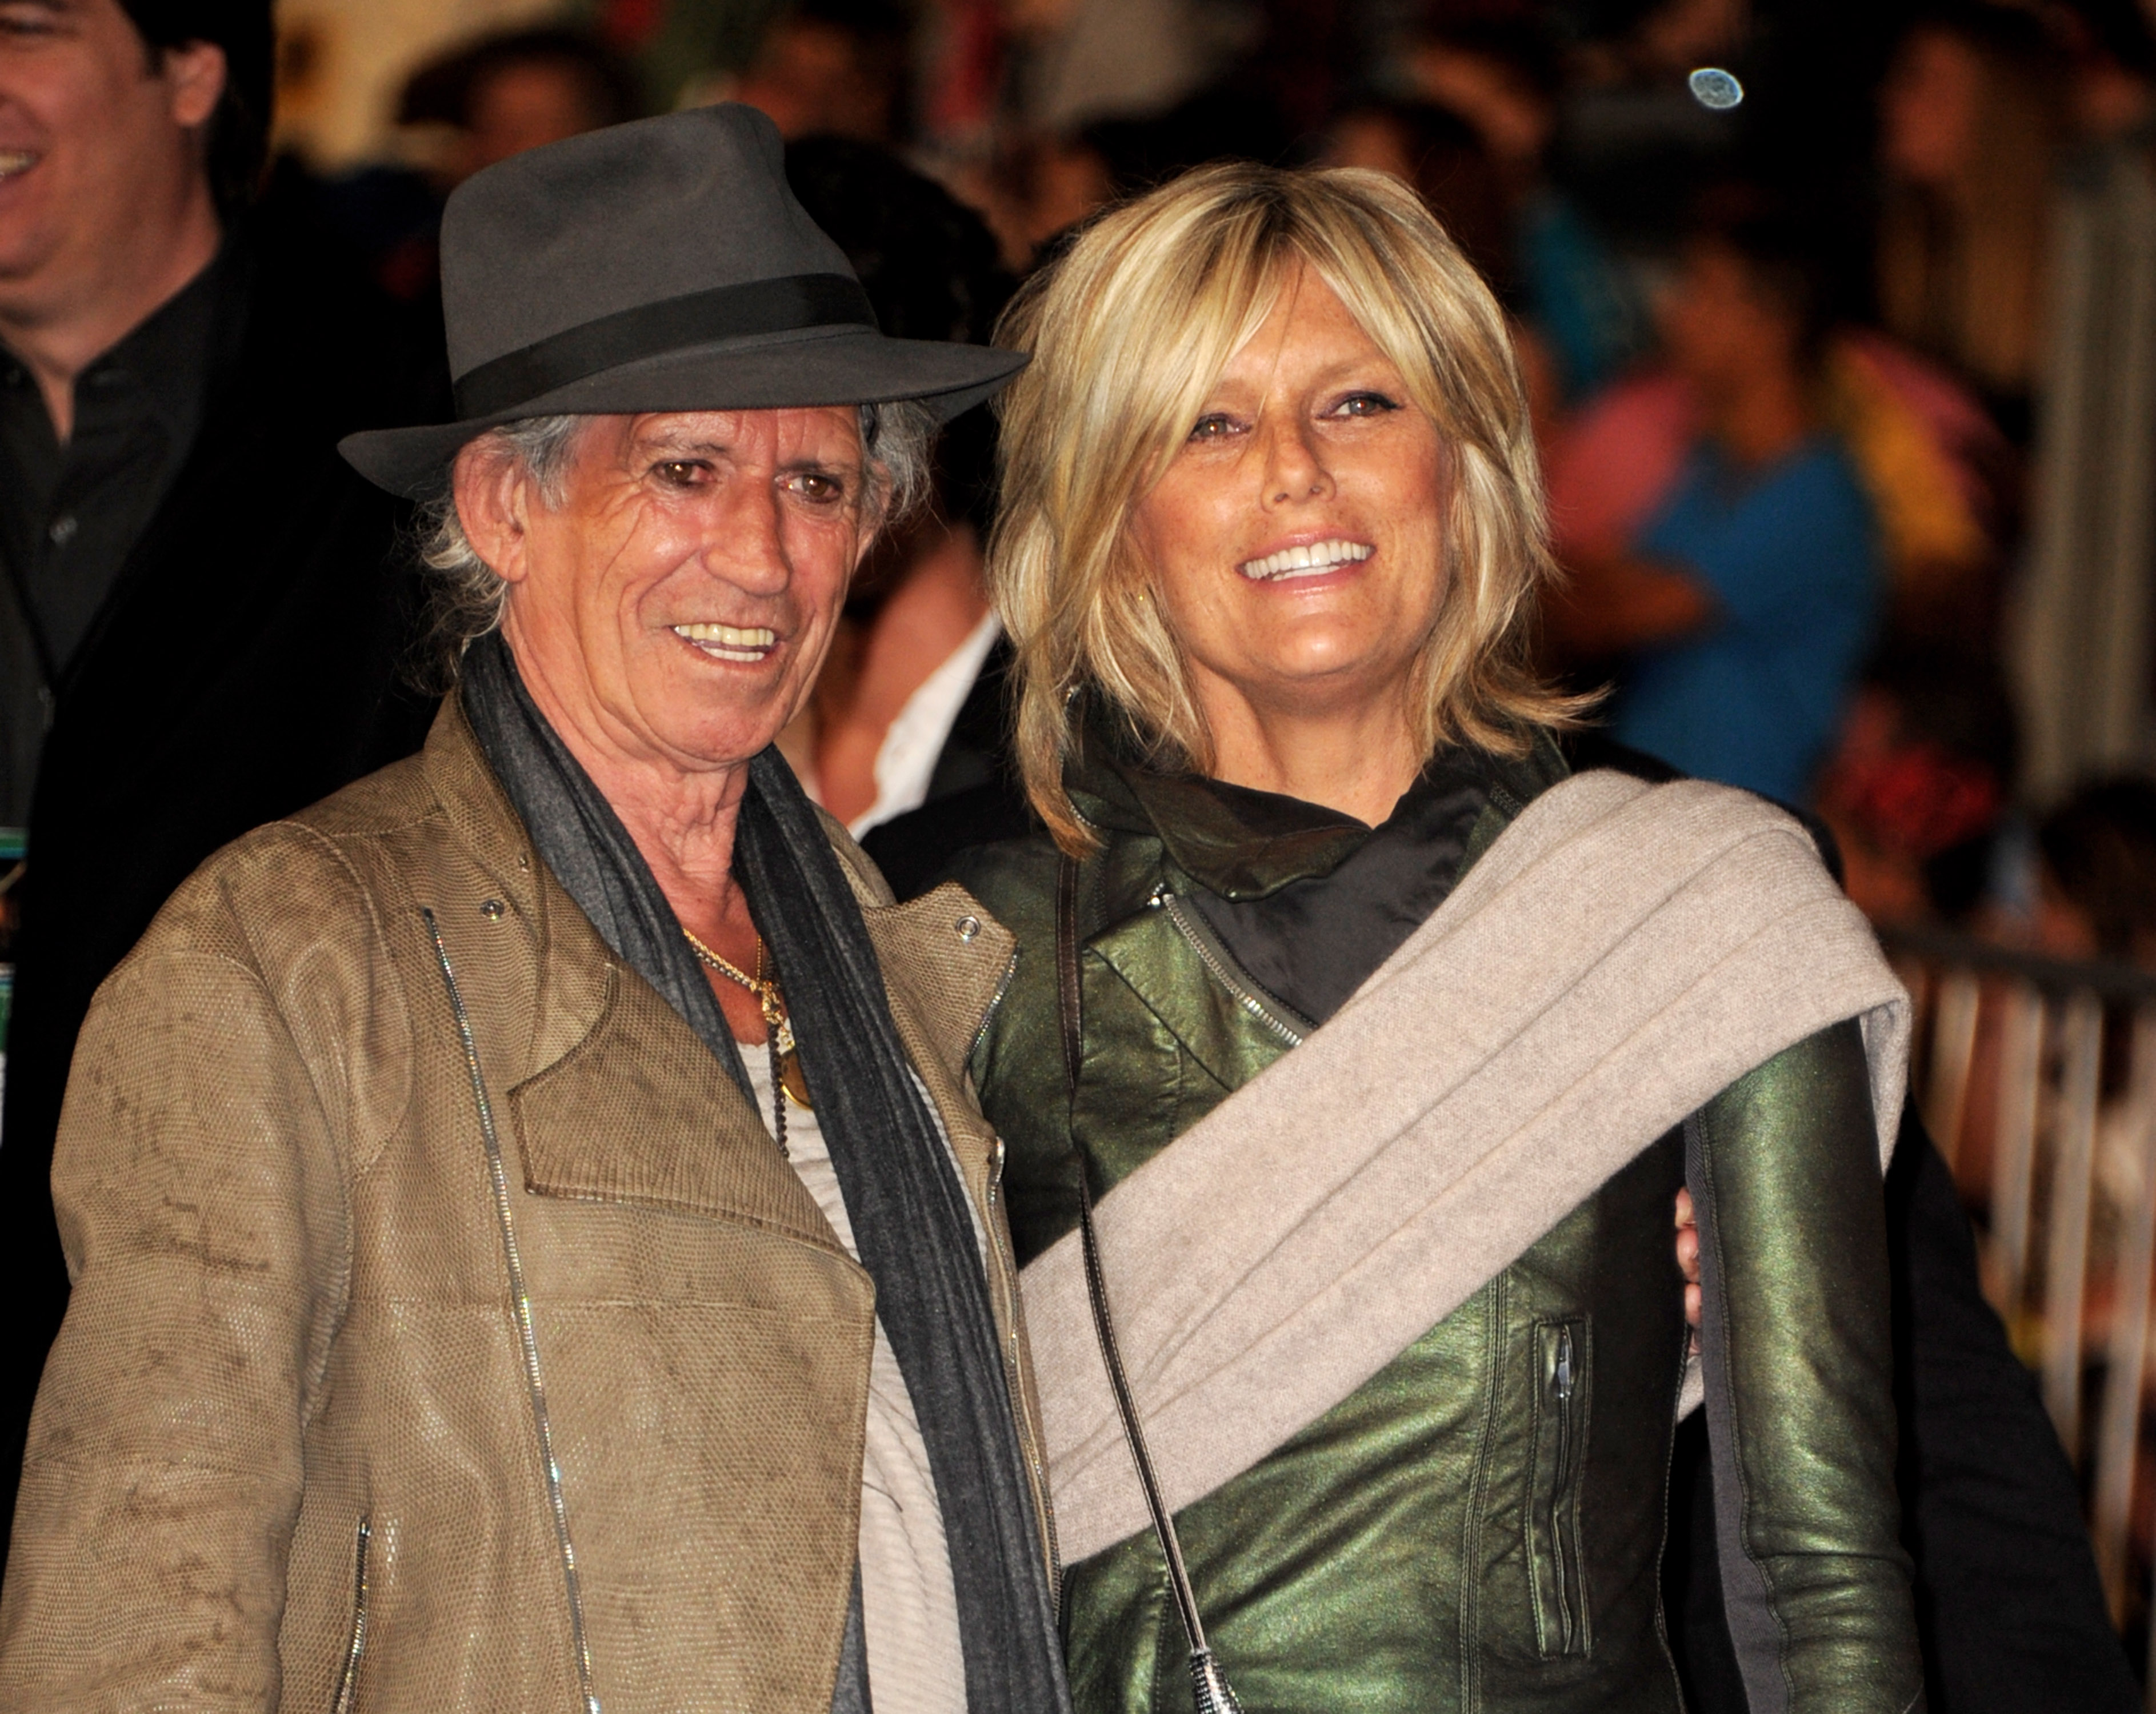 """ANAHEIM, CA - MAY 07:  Musician Keith Richards (L) and his wife Patti Hansen arrive at the premiere of Walt Disney Pictures' """"Pirates of the Caribbean: On Stranger Tides"""" at Disneyland on May 7, 2011 in Anaheim, California.  (Photo by Kevin Winter/Getty Images)"""